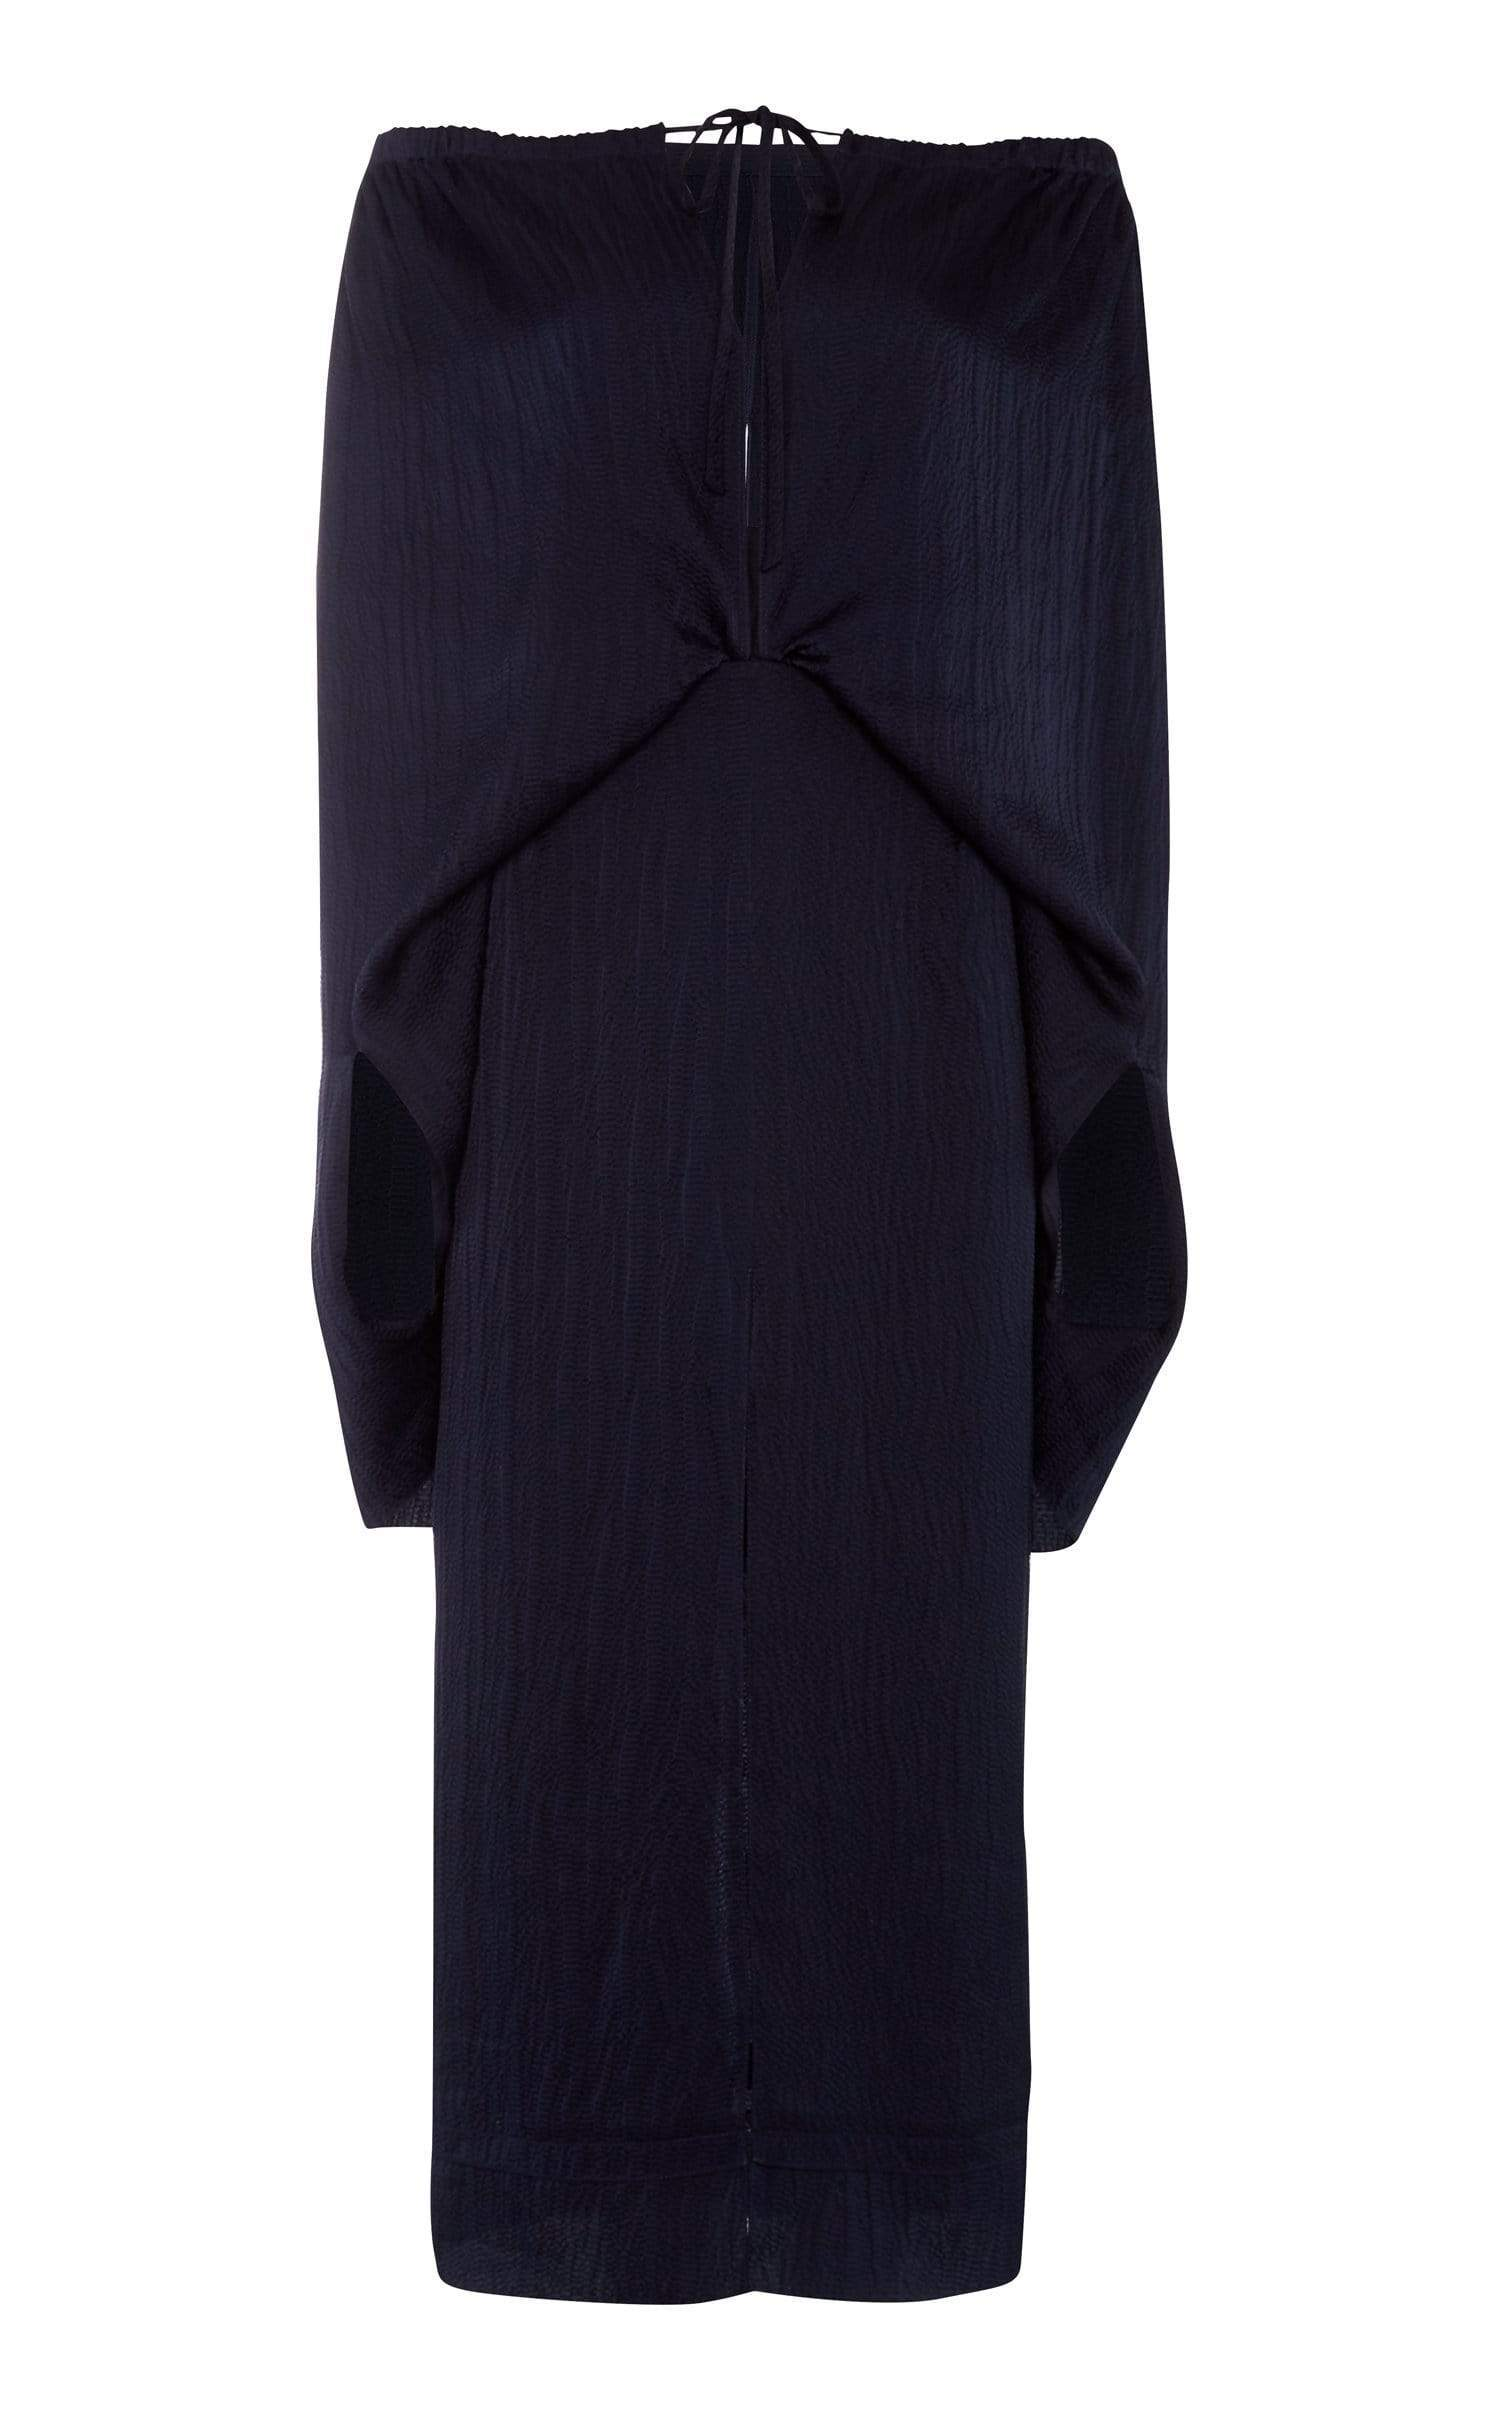 Hinsby Dress In Navy from Roland Mouret